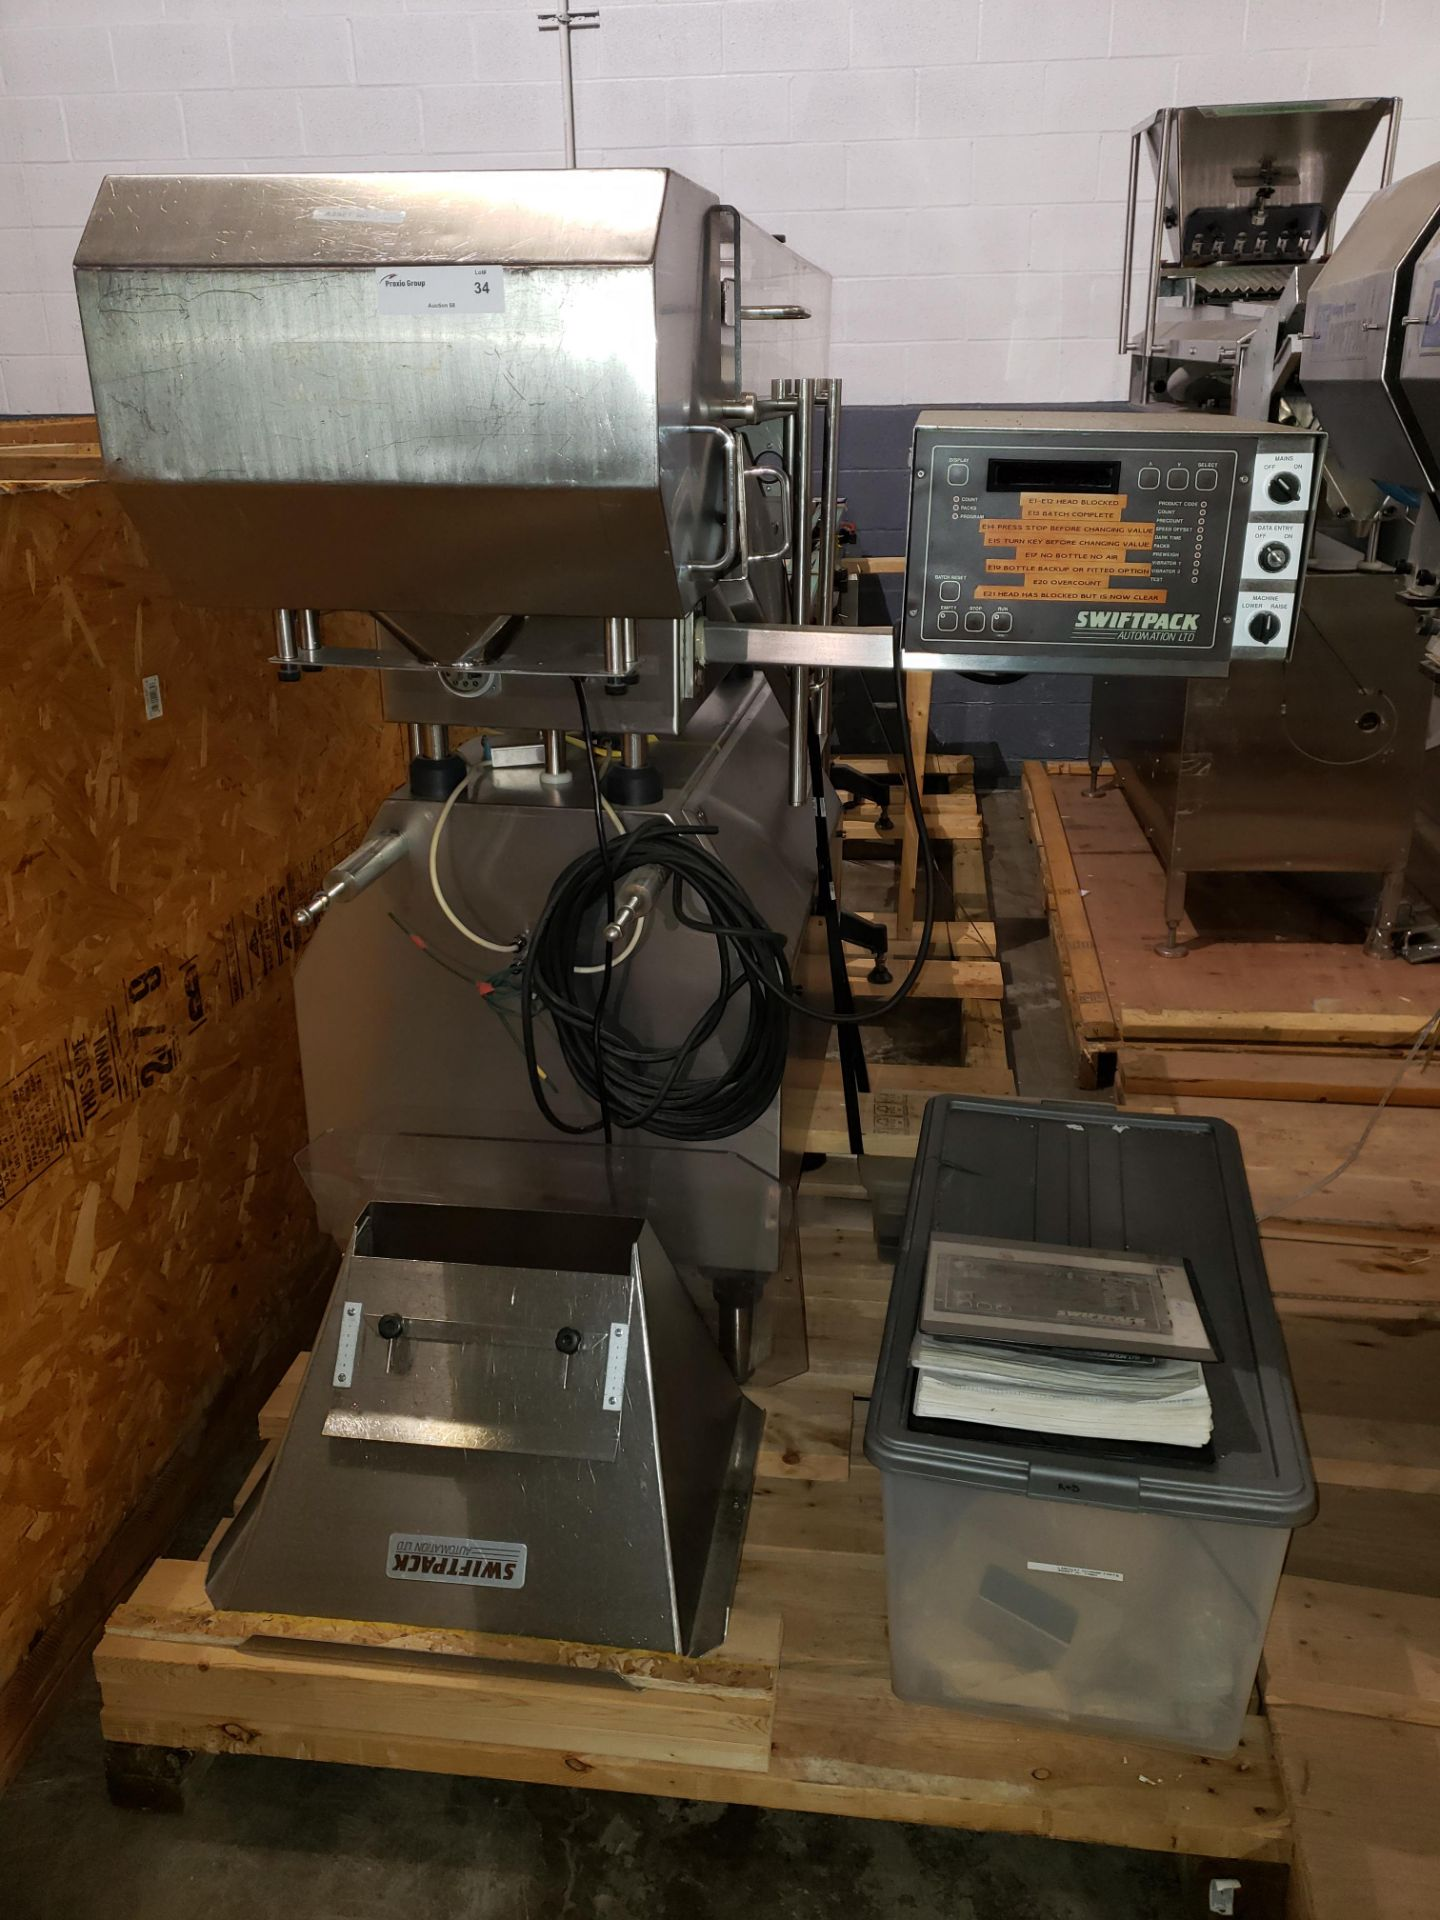 Lot 34 - Swiftpack lane counter, model SPC12P, stainless steel product contact surfaces, 12 lane, 2